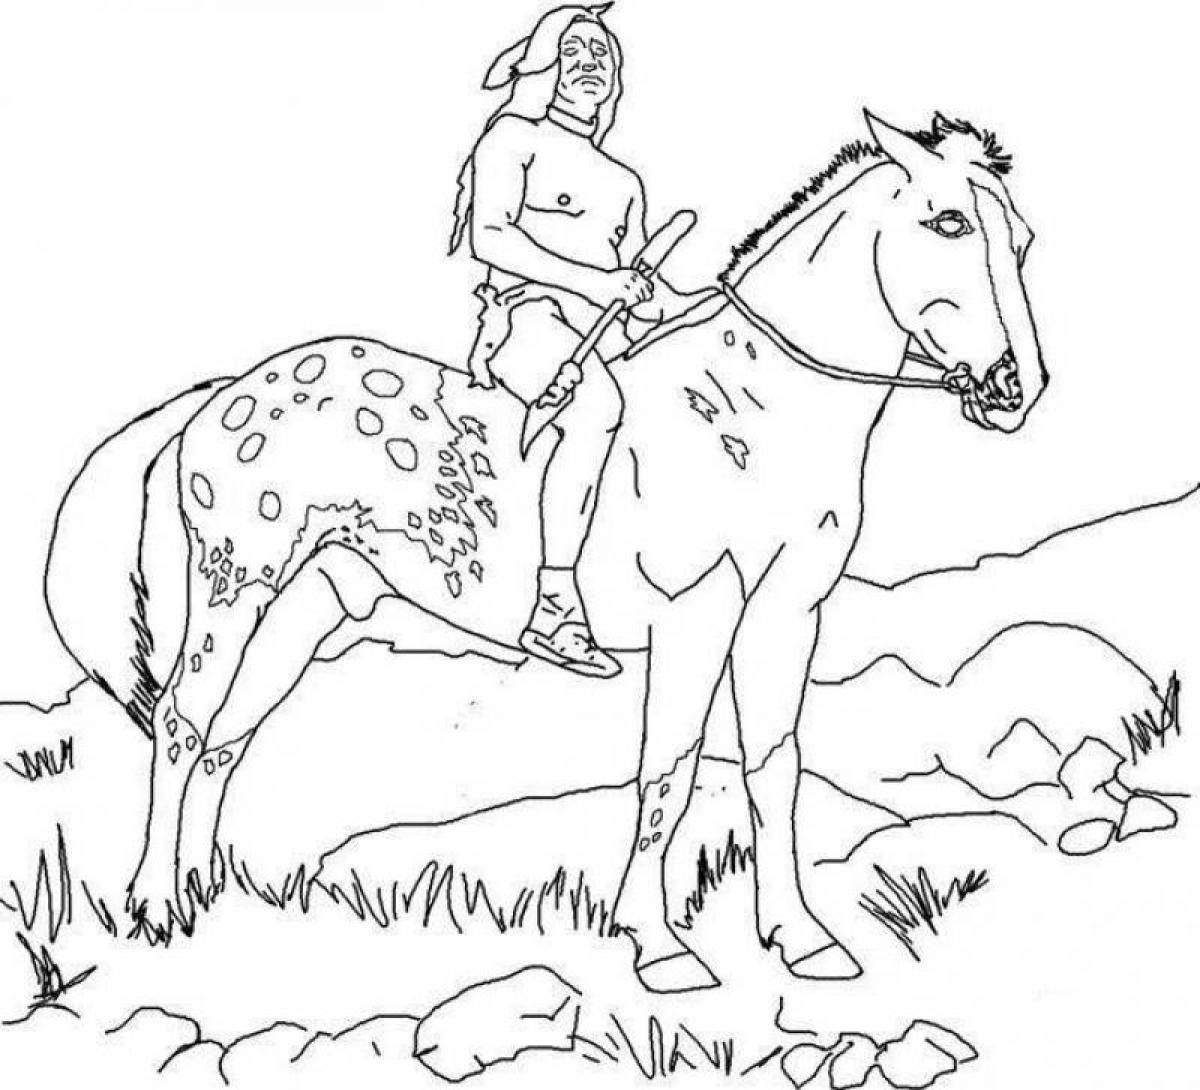 Native America Indian Horse Coloring Page Coloring Page Horse Coloring Pages Horse Coloring Books Horse Coloring